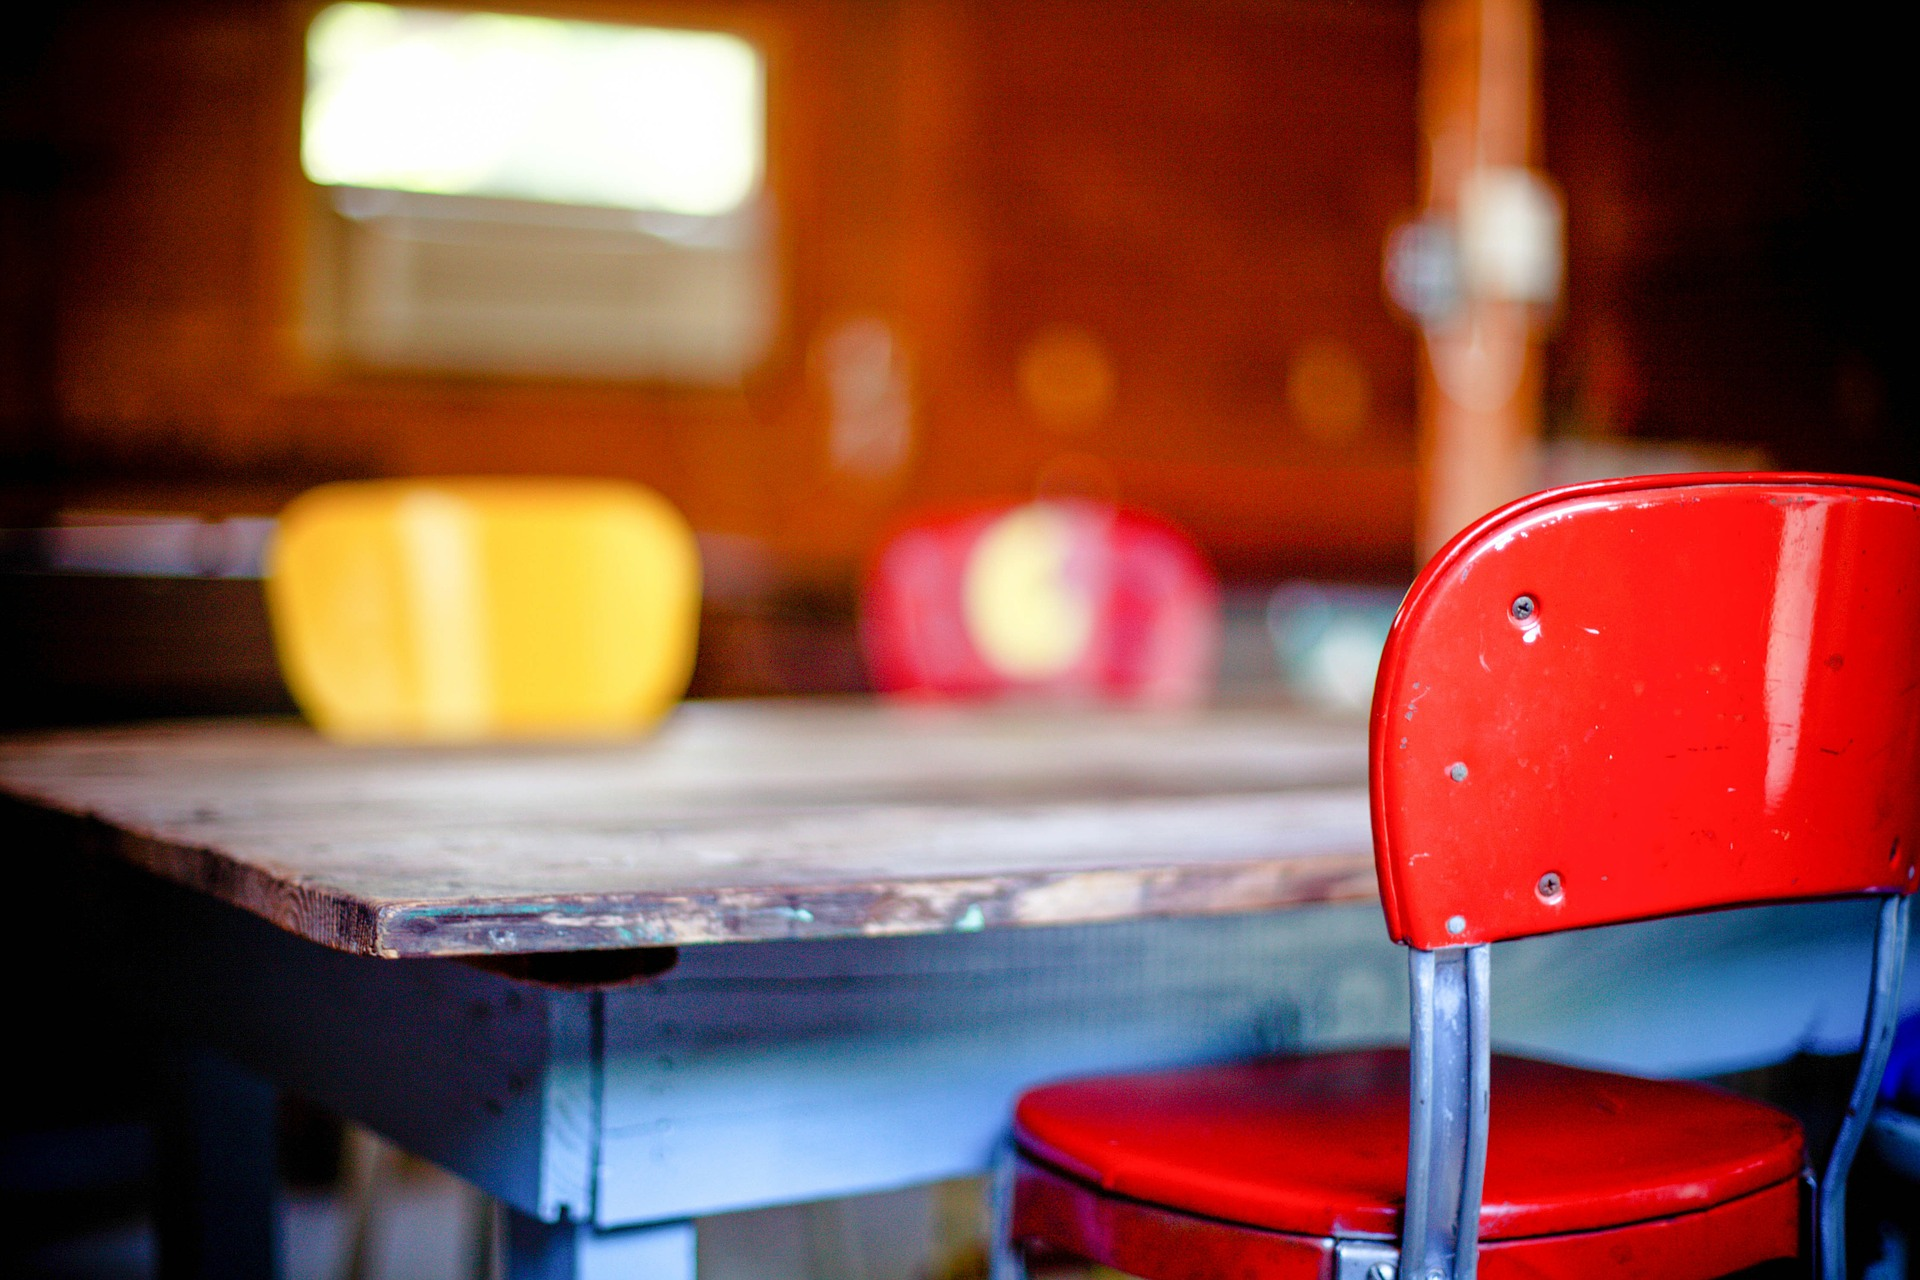 A rustic wooden table with two red chairs and one yellow chair.